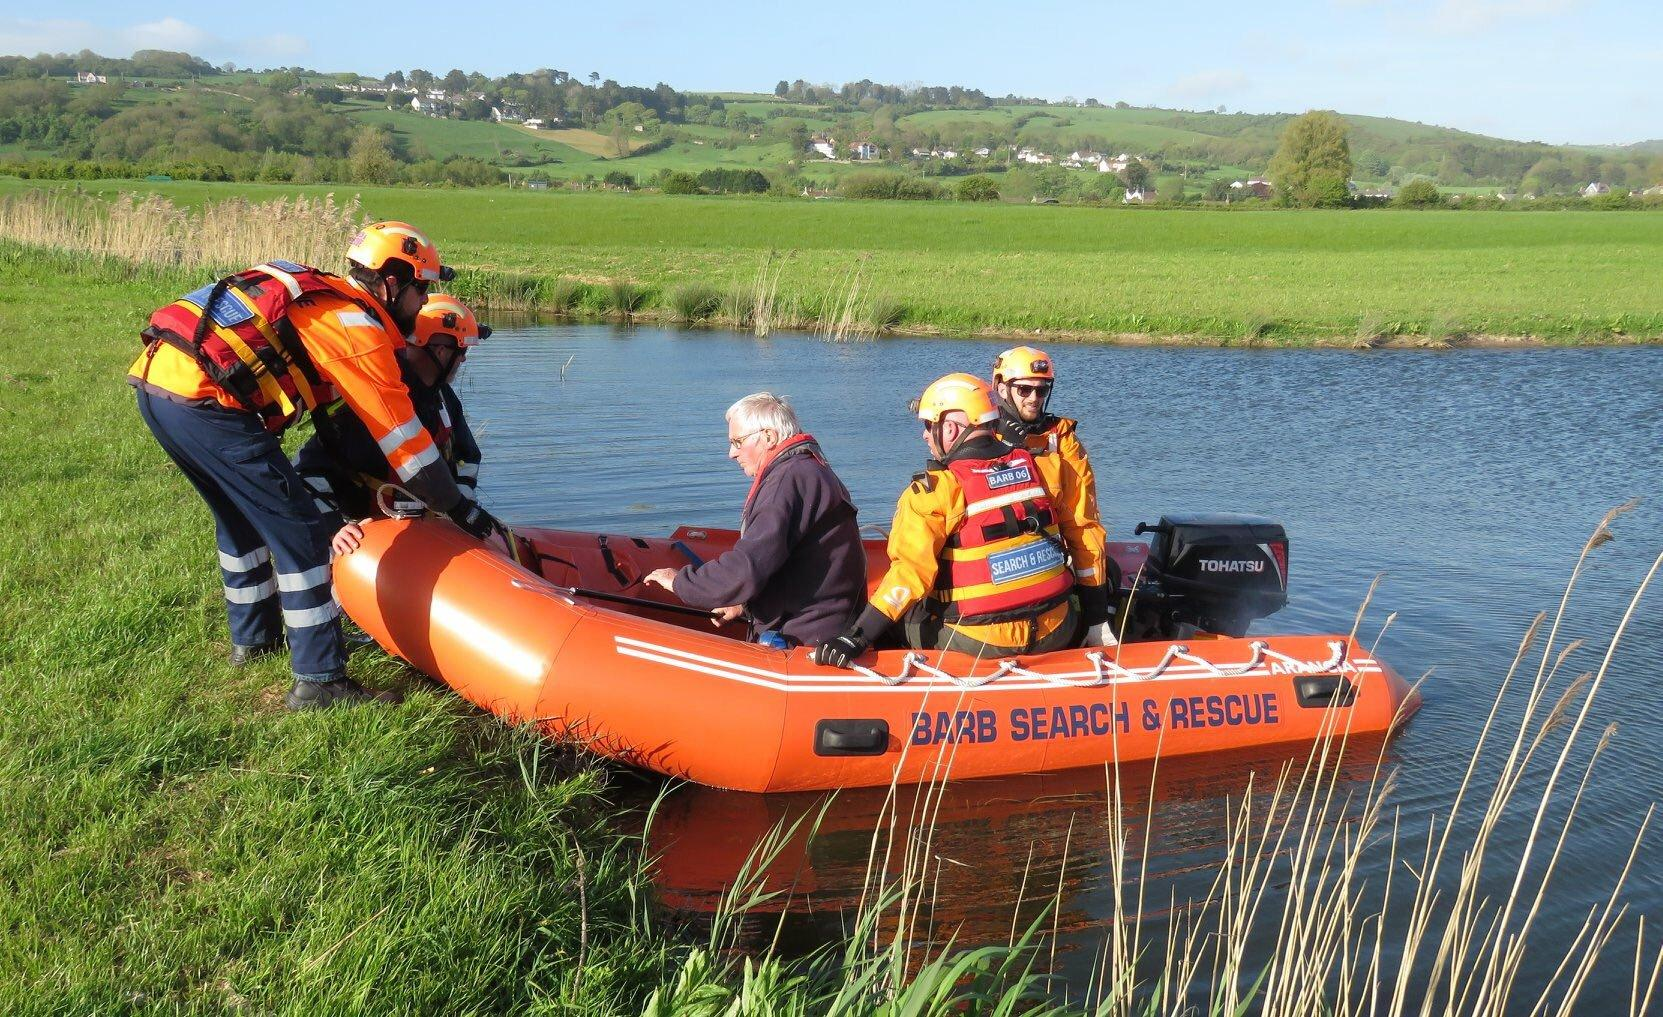 Delivering a life-saving rescue service in Burnham-on-Sea